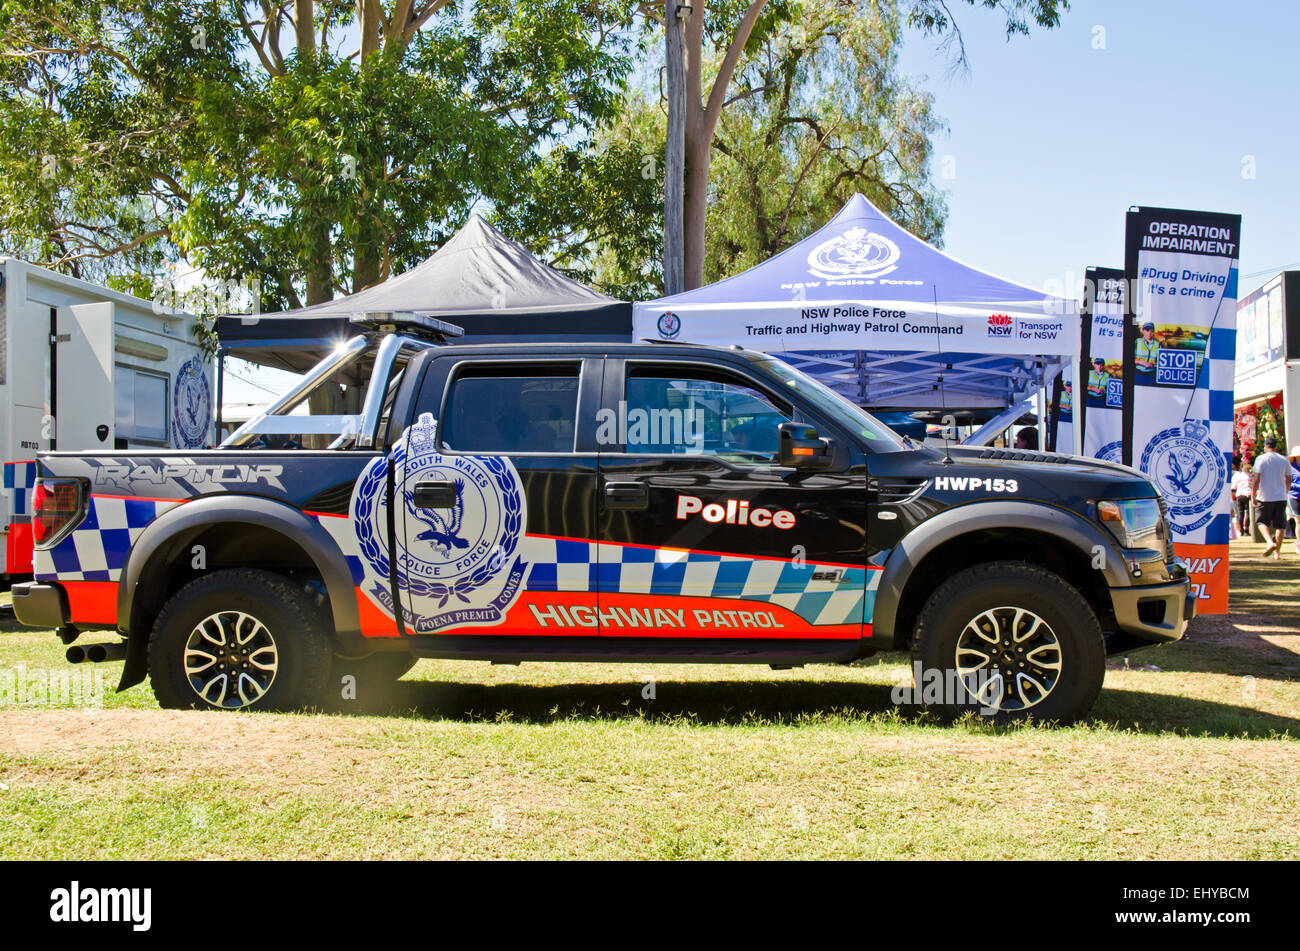 NSW Australia Highway Patrol Police Vehicle  Ford F-150 SVT Raptor